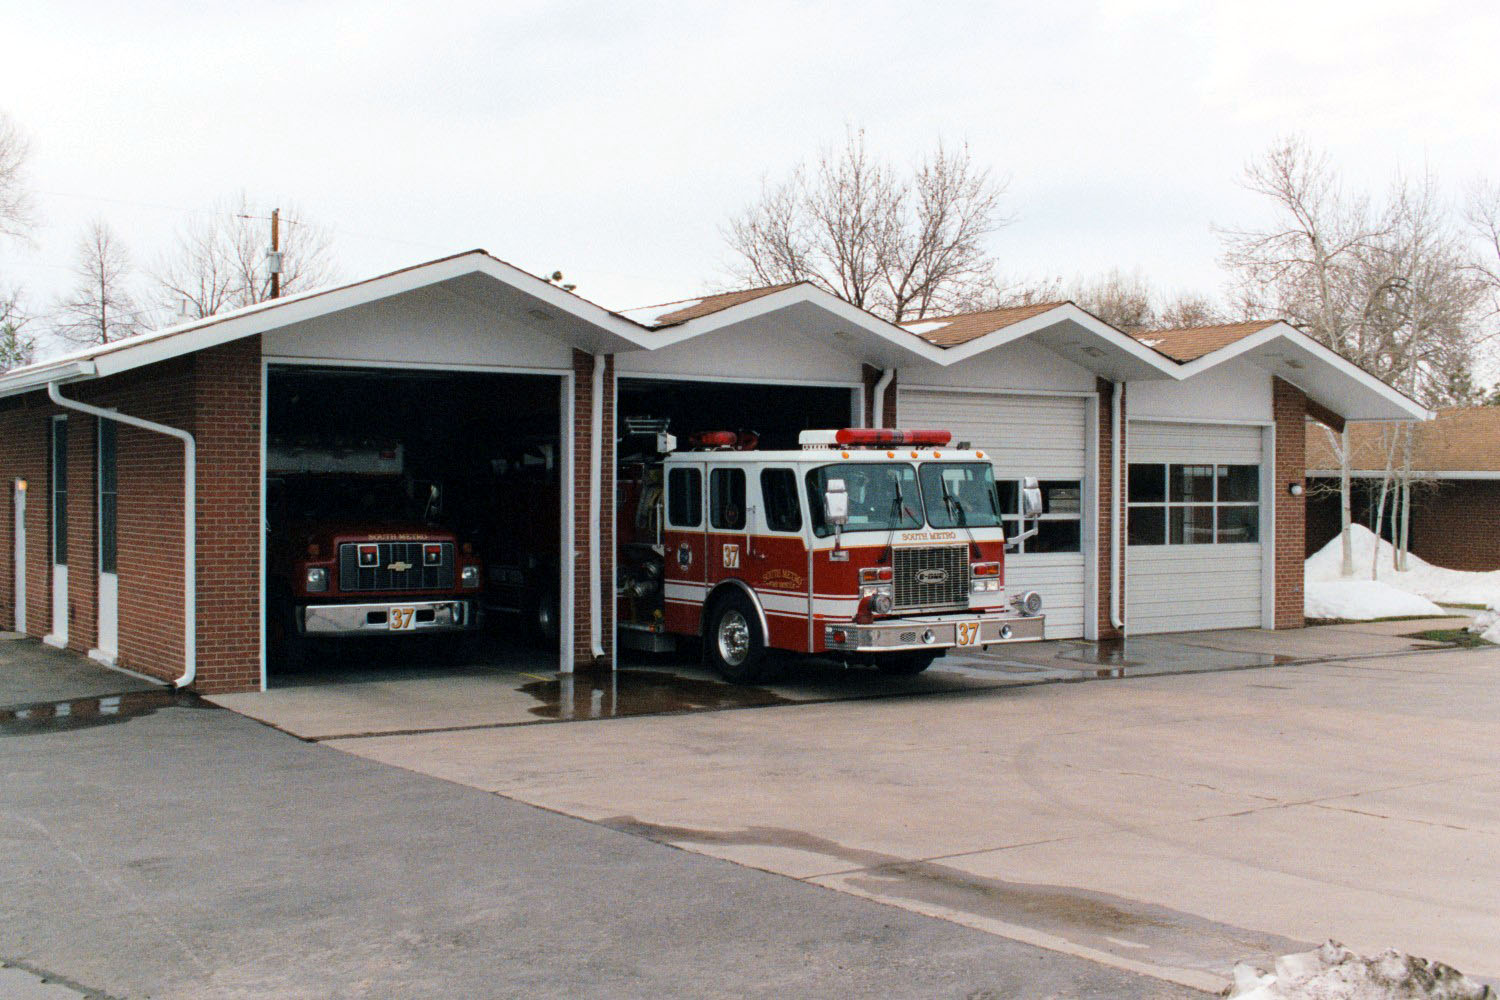 Fire Station 37